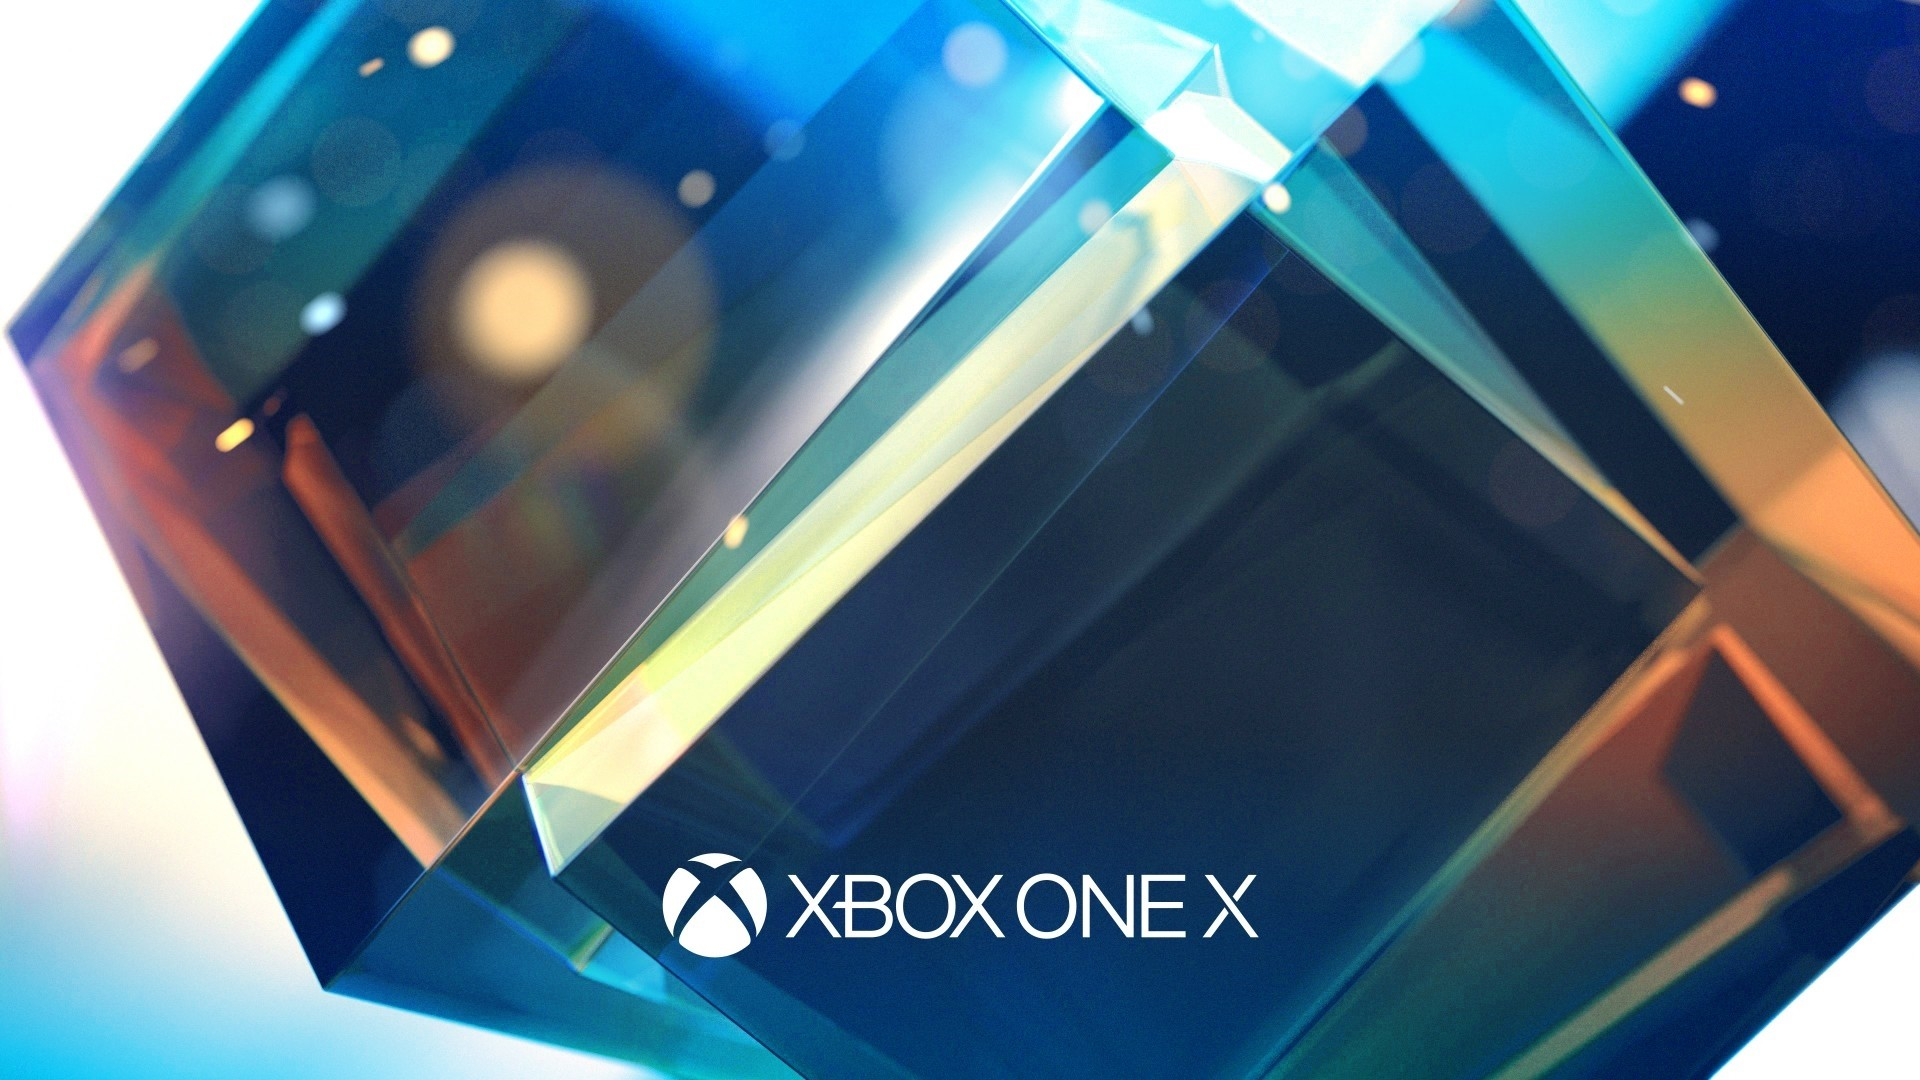 Xbox One Wallpaper Free Download